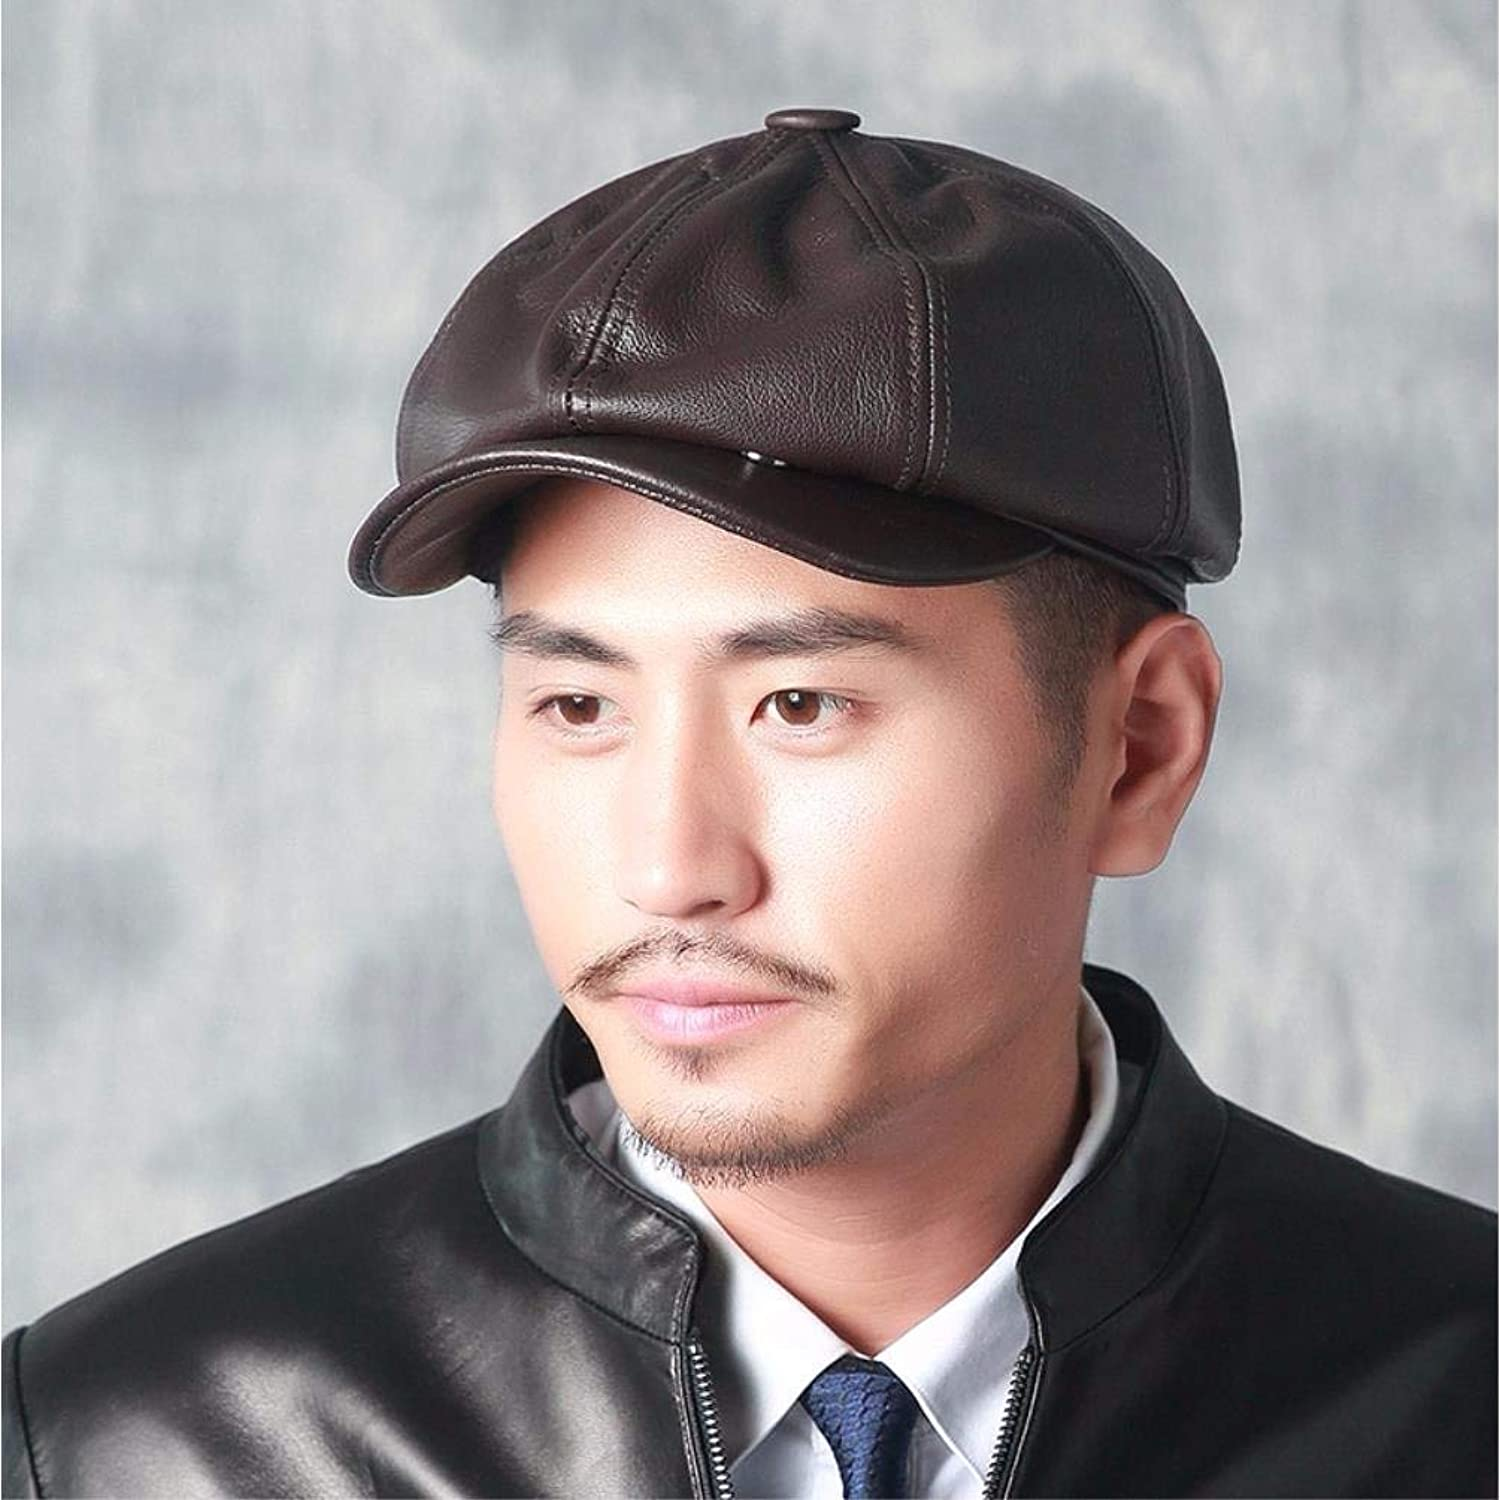 Dingkun Man woman autumn and winter casual leather hat painter hat newspaper hat cap octagonal cap